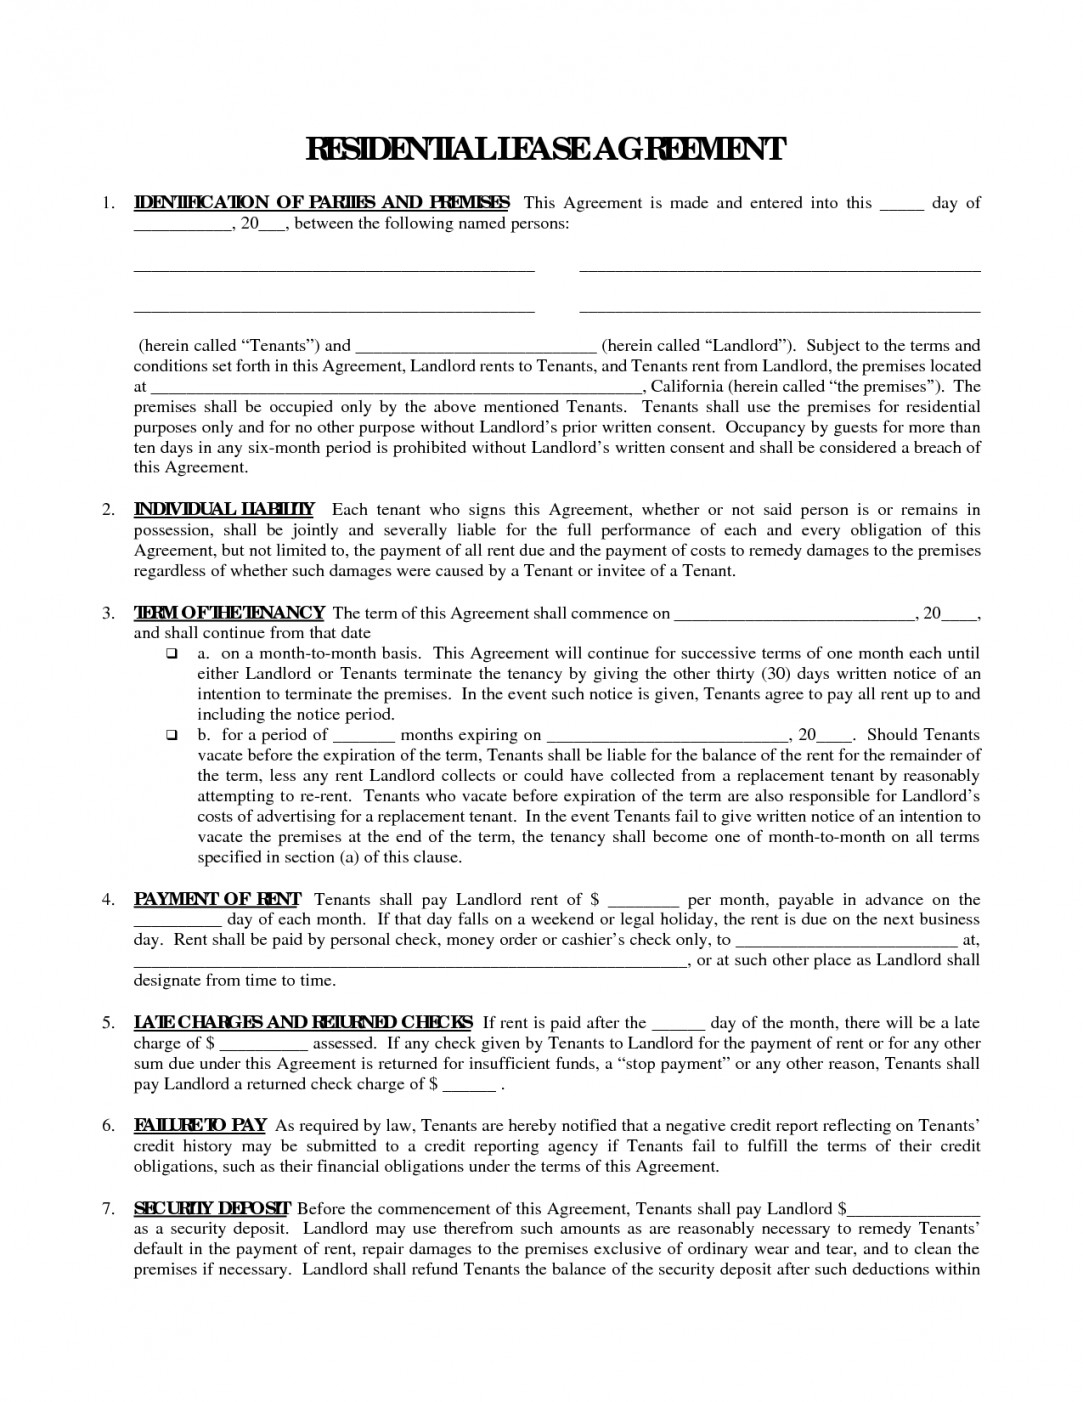 Free Florida Residential Lease Agreement Template | Lostranquillos - Free Printable Florida Residential Lease Agreement